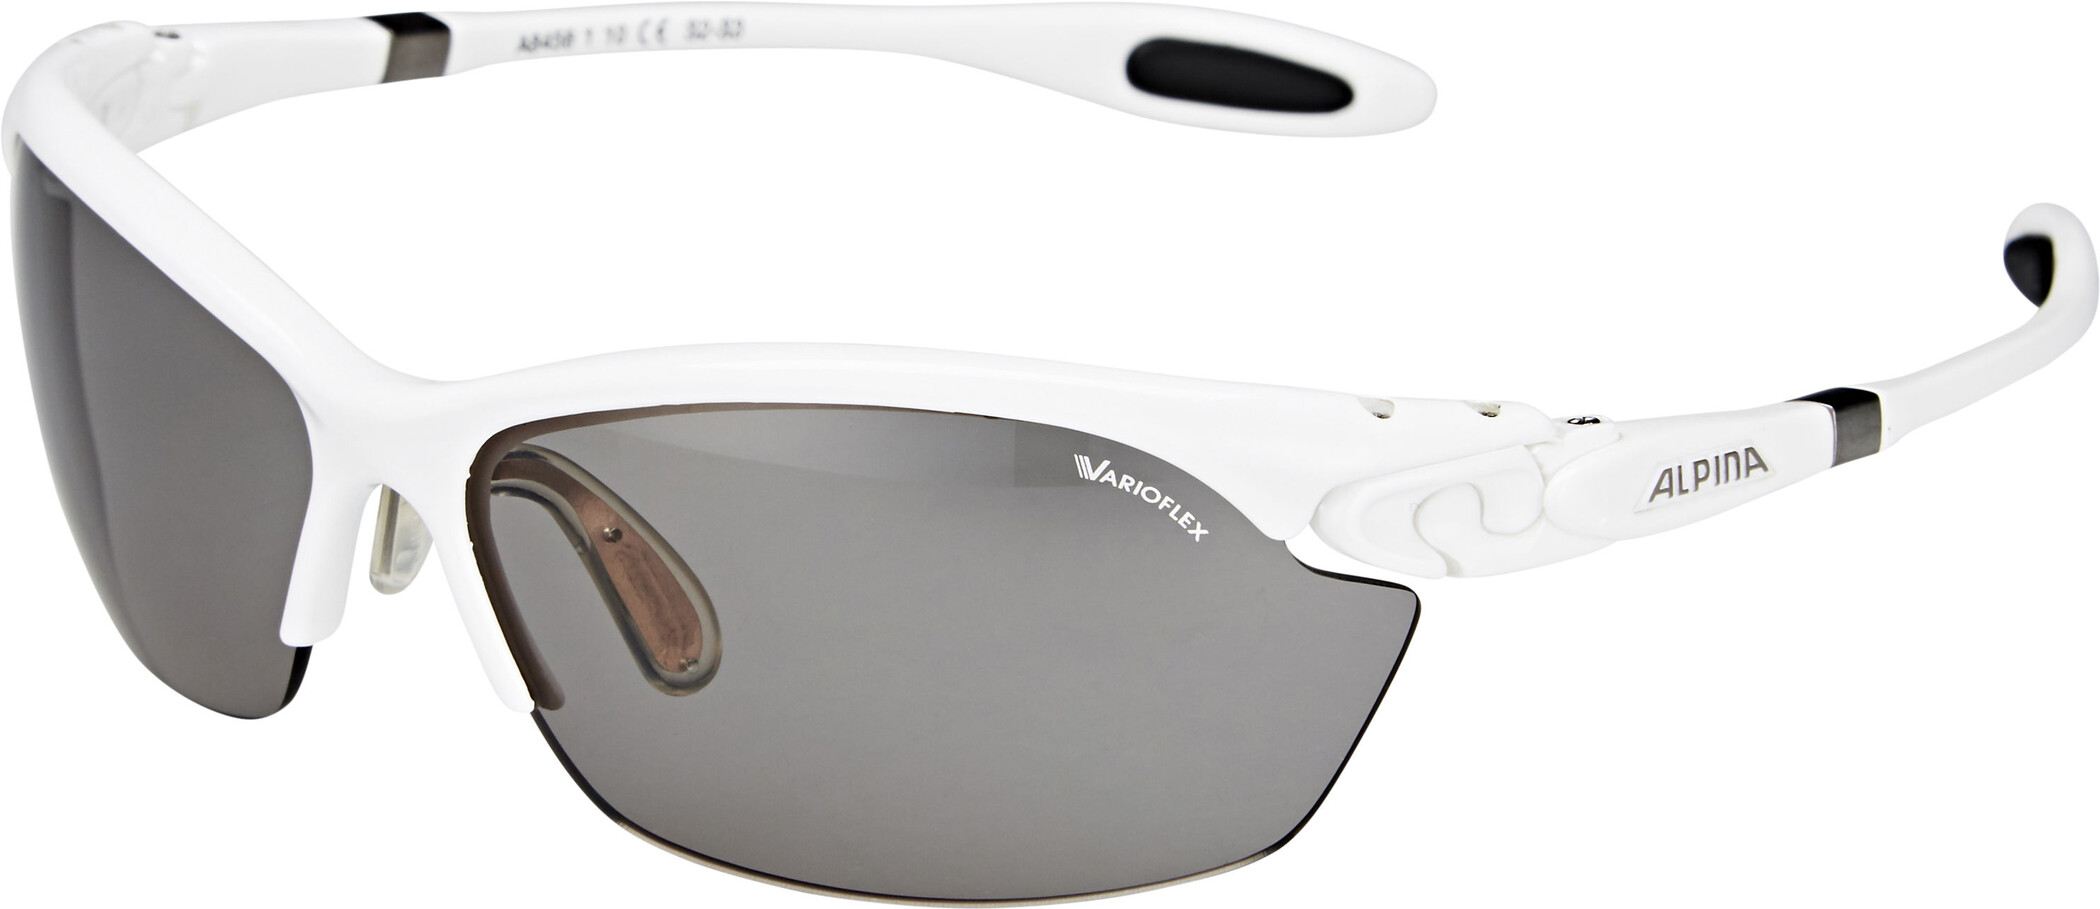 Alpina Twist Three 2.0 VL Brille, white (2019) | Glasses